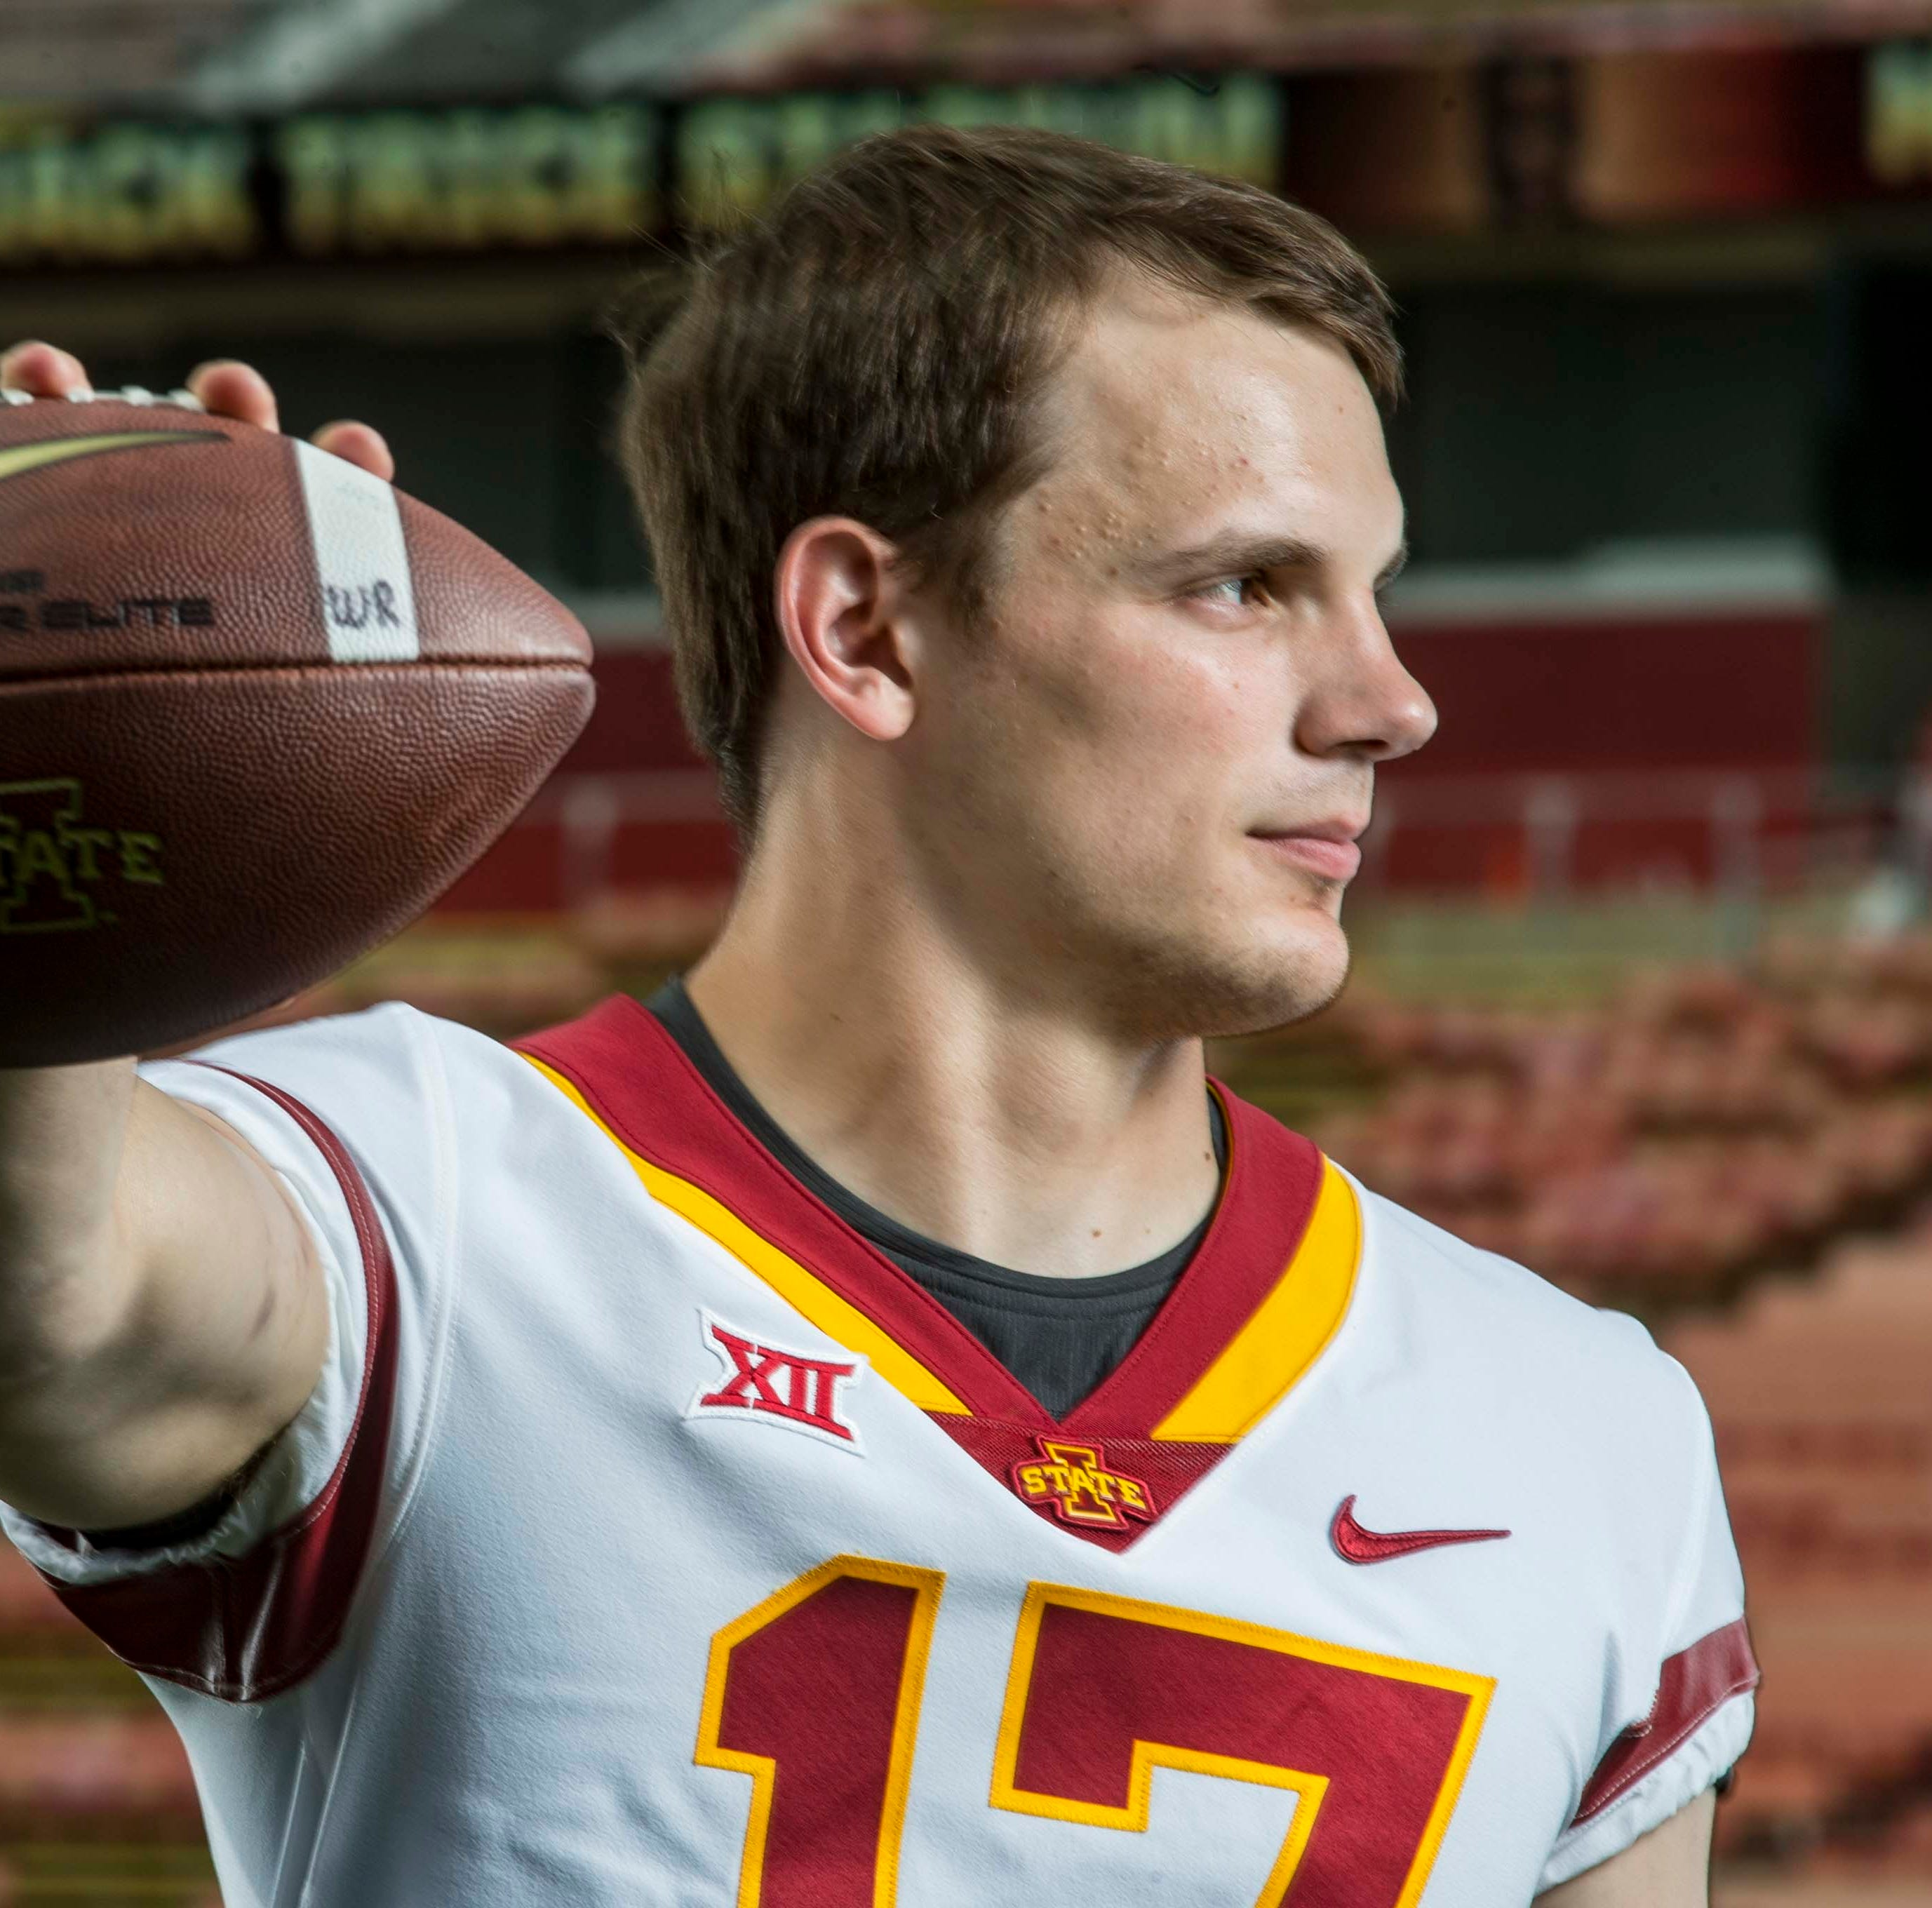 Kyle Kempt's next role? Matt Campbell says: Coach